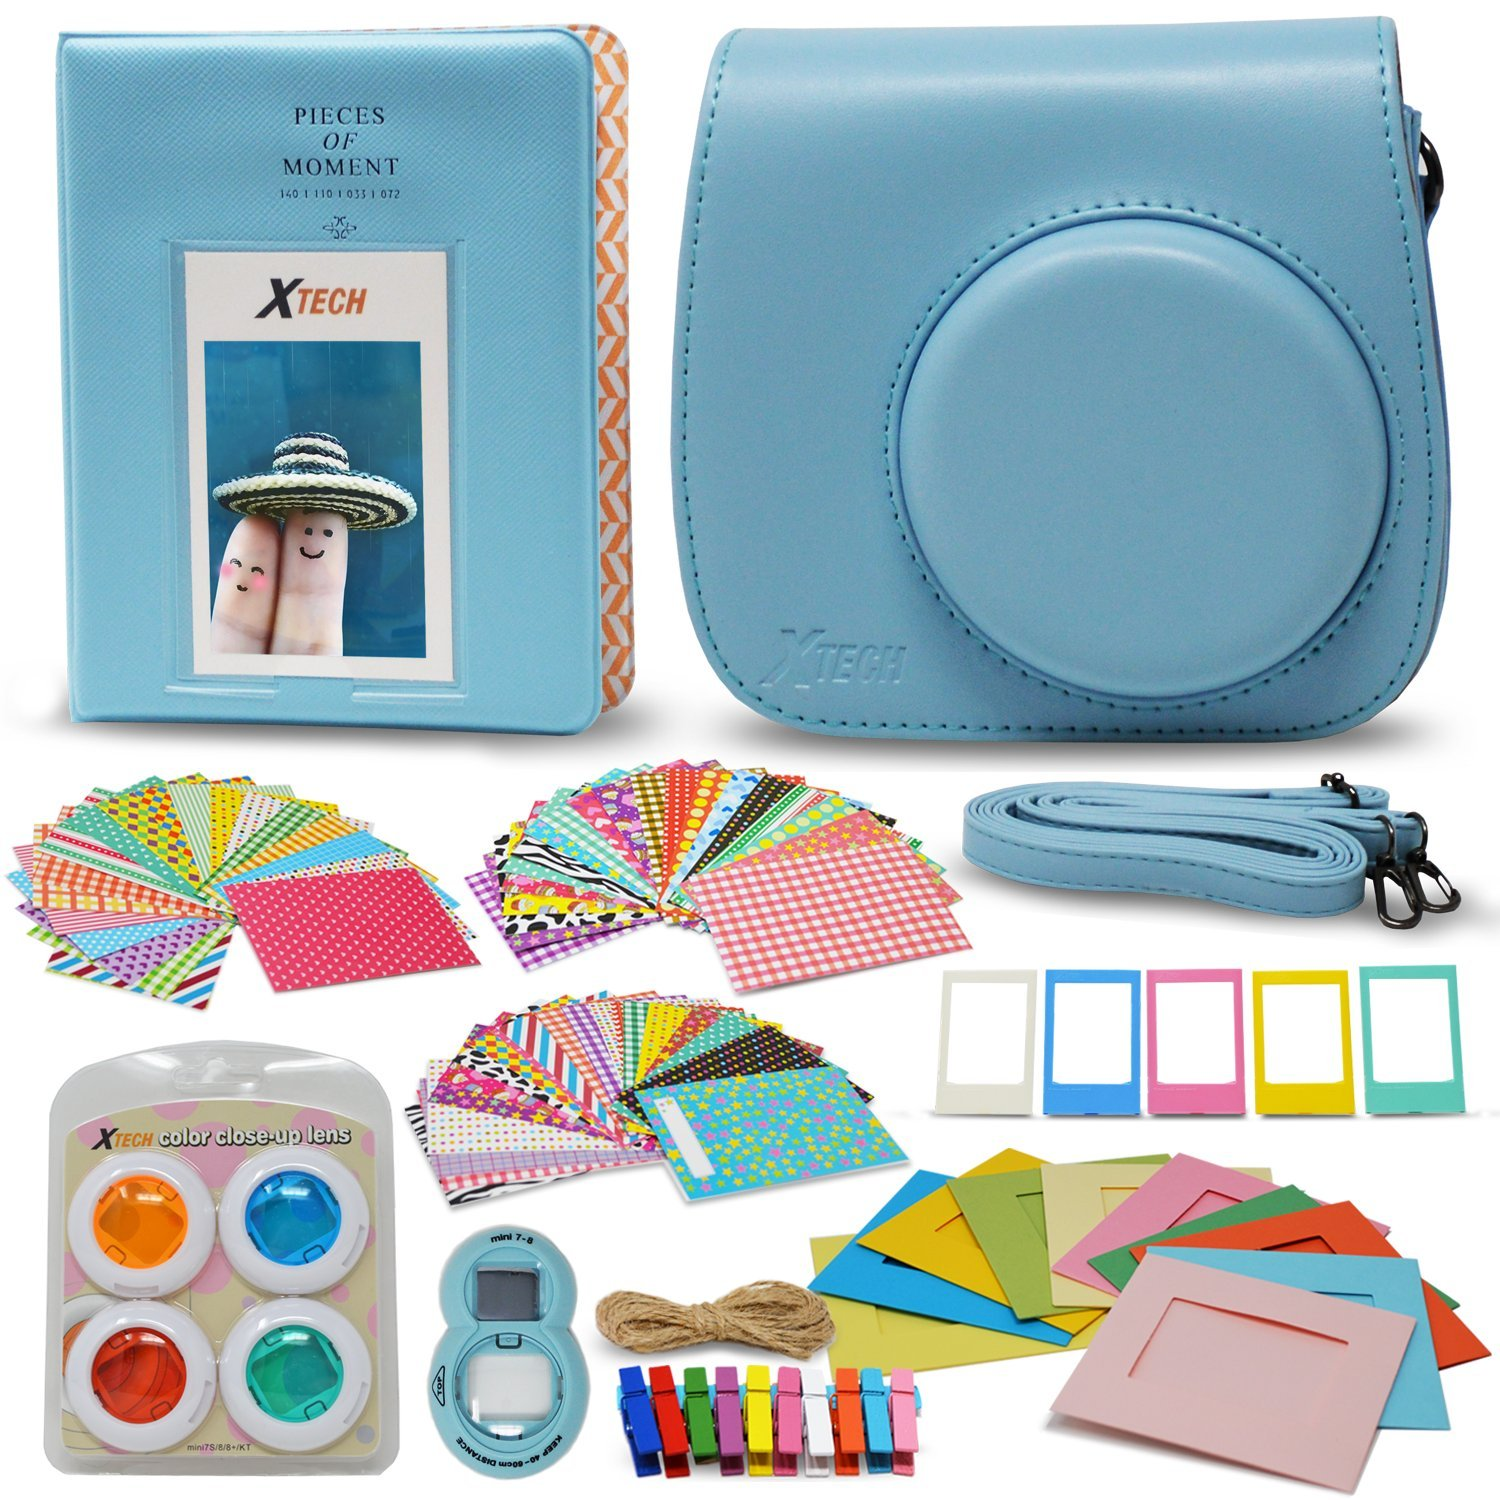 Xtech FujiFilm Instax Mini 9/8 BLUE Accessories Kit with Blue Camera Case with Strap + Photo Album + Colorful Frames + Sticker Frames + Large Selfie Mirror + 4 Colorful Filters + String + MORE